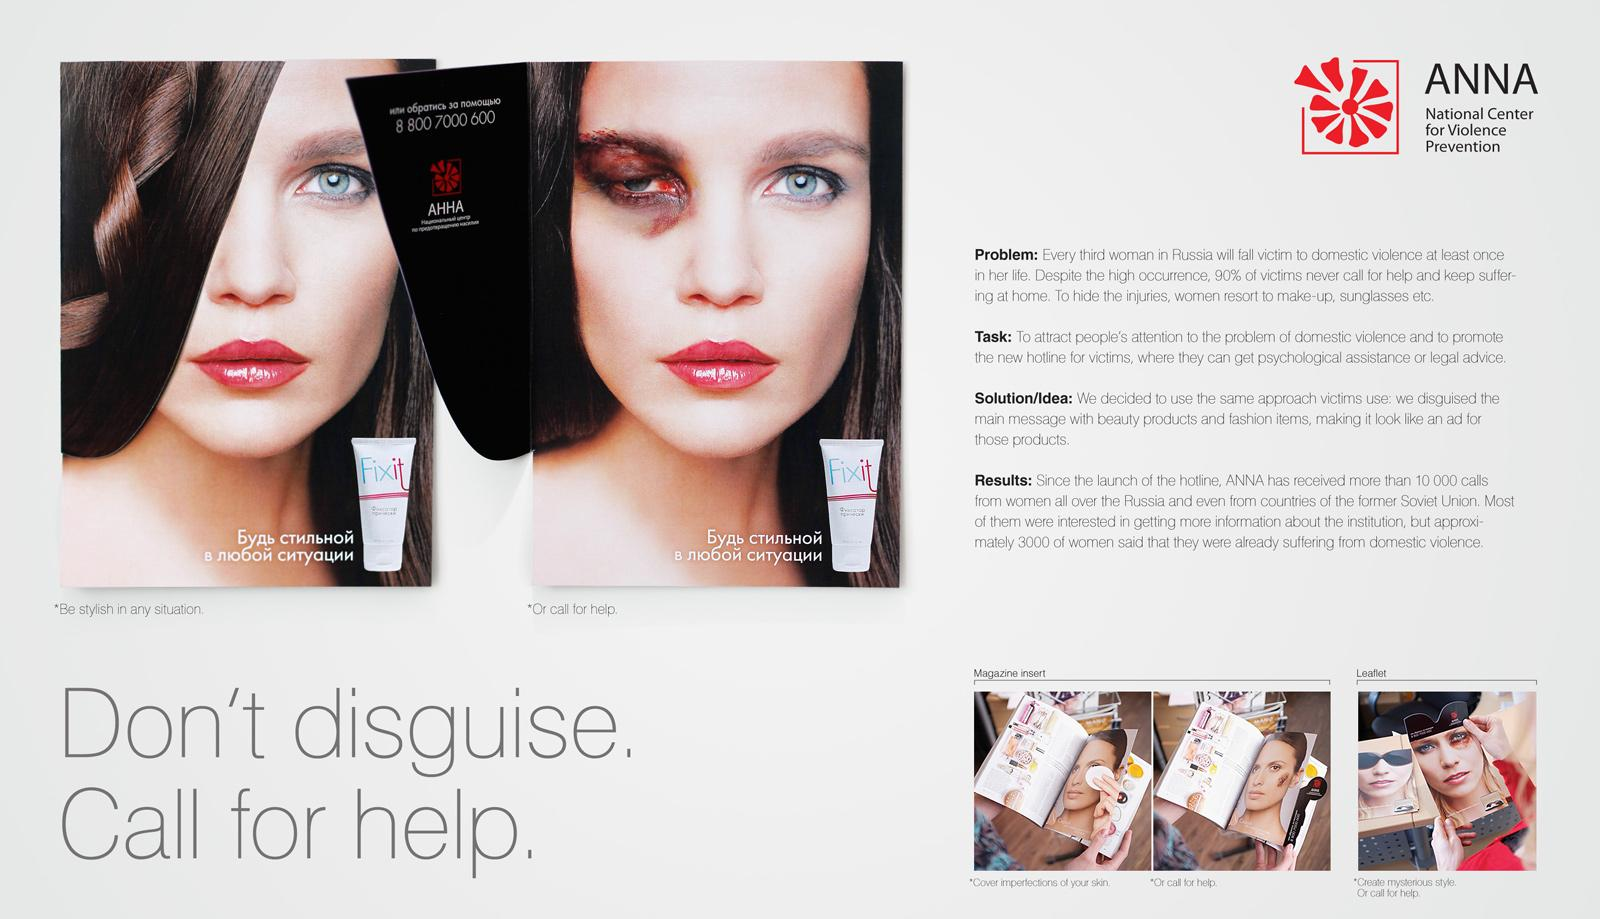 ANNA Print Ad -  Don't disguise. Call for help.